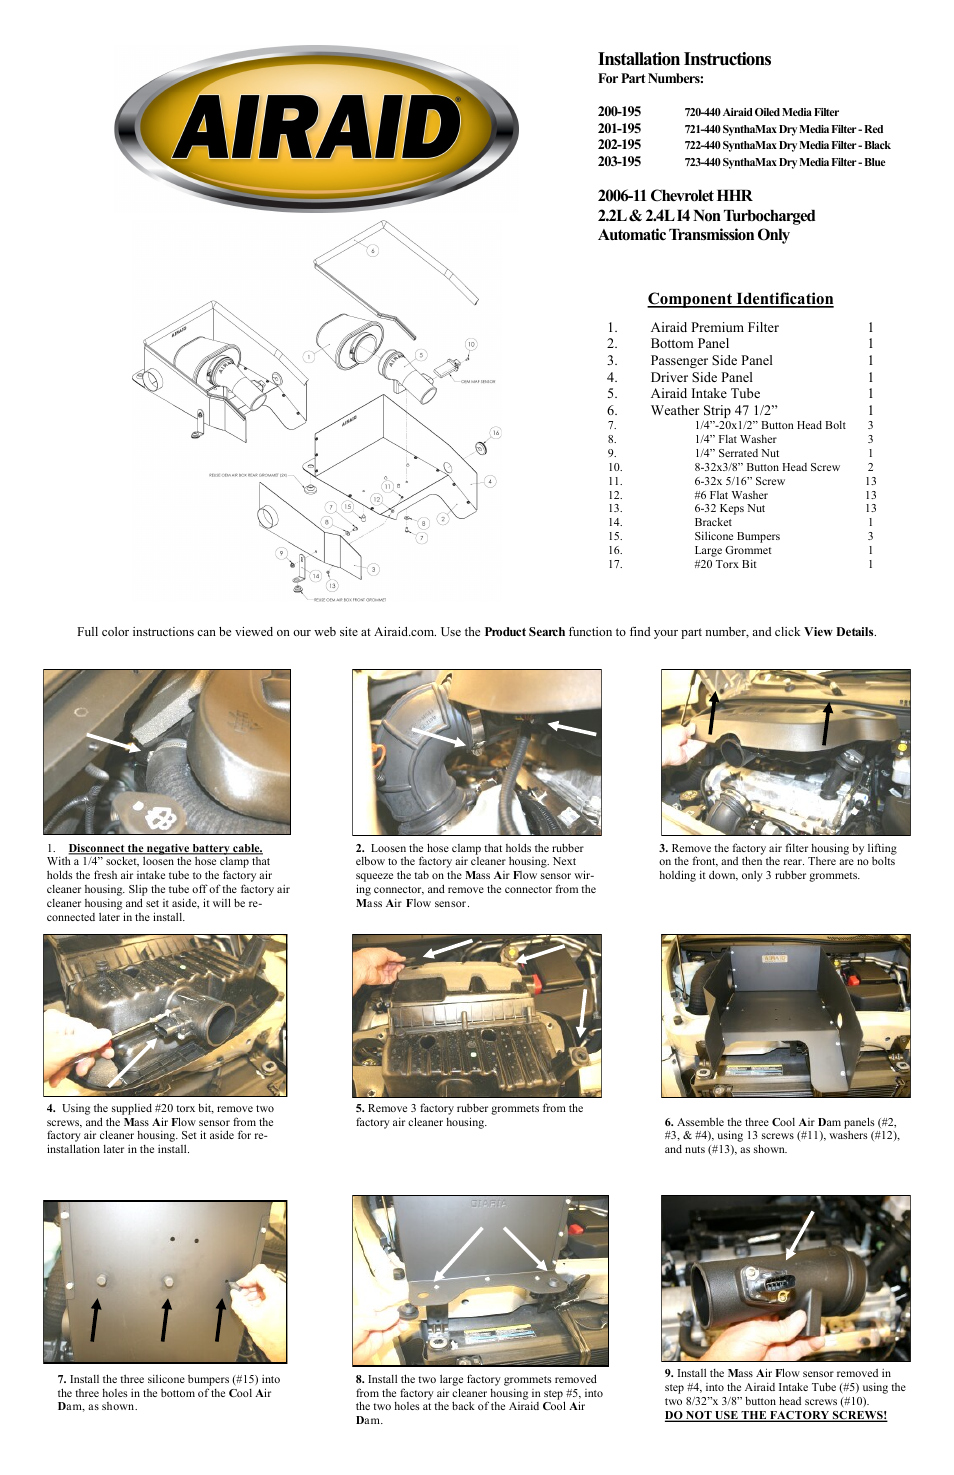 Airaid 200-195 User Manual | 2 pages | Also for: 201-195